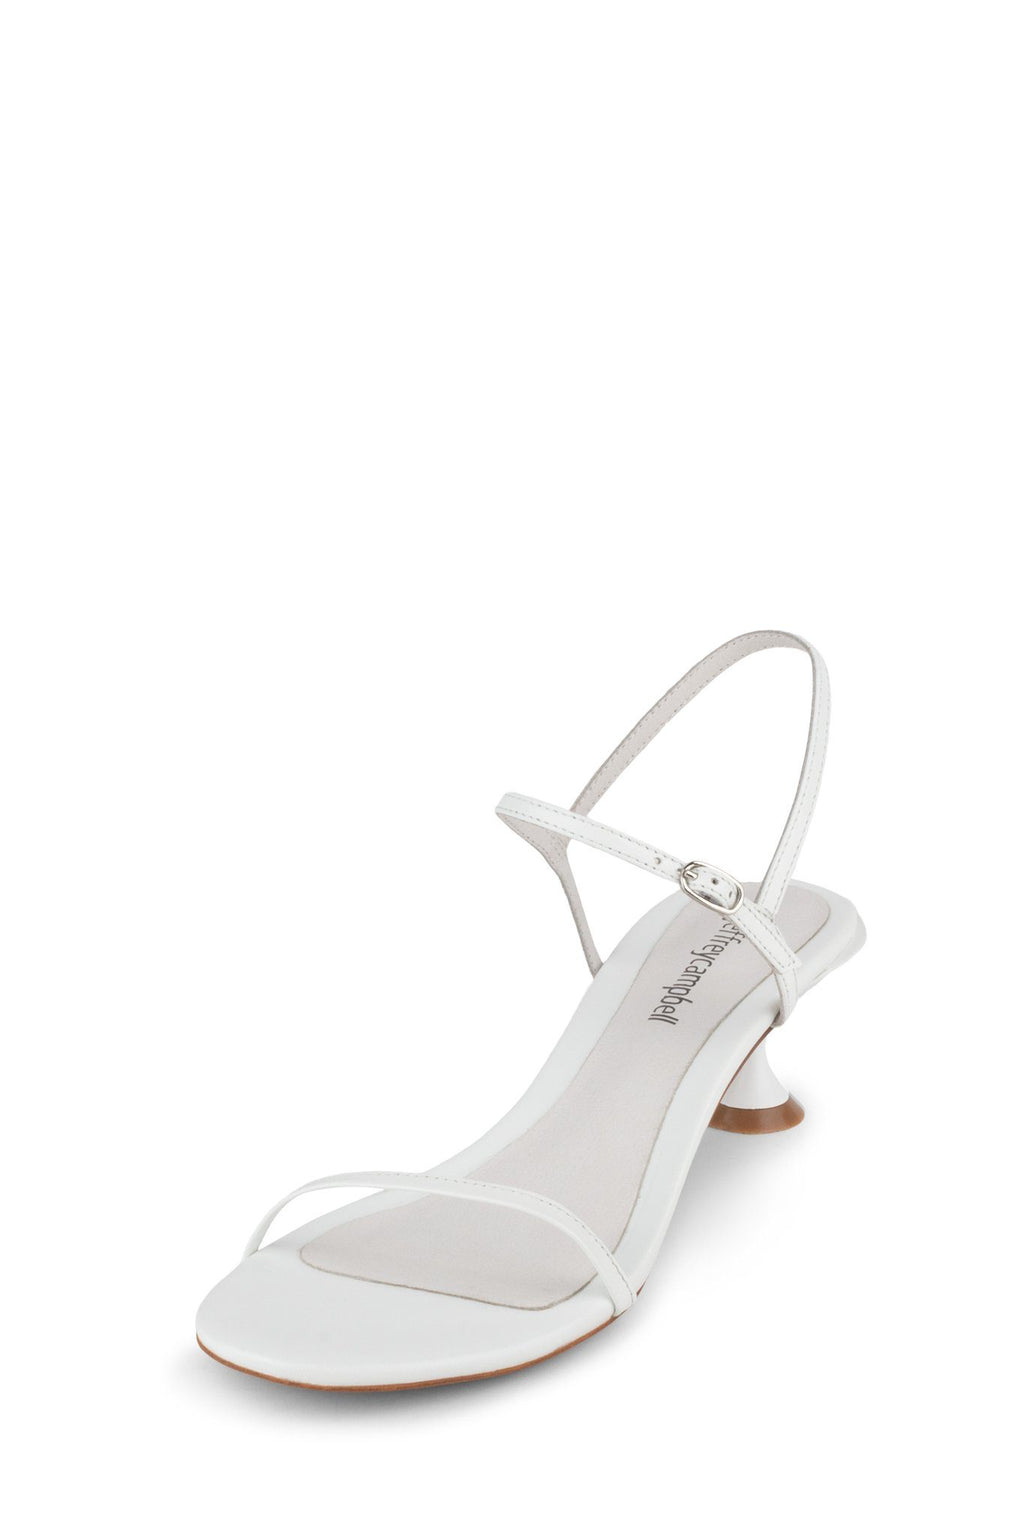 TWILIGHT-2 Heeled Sandal ST